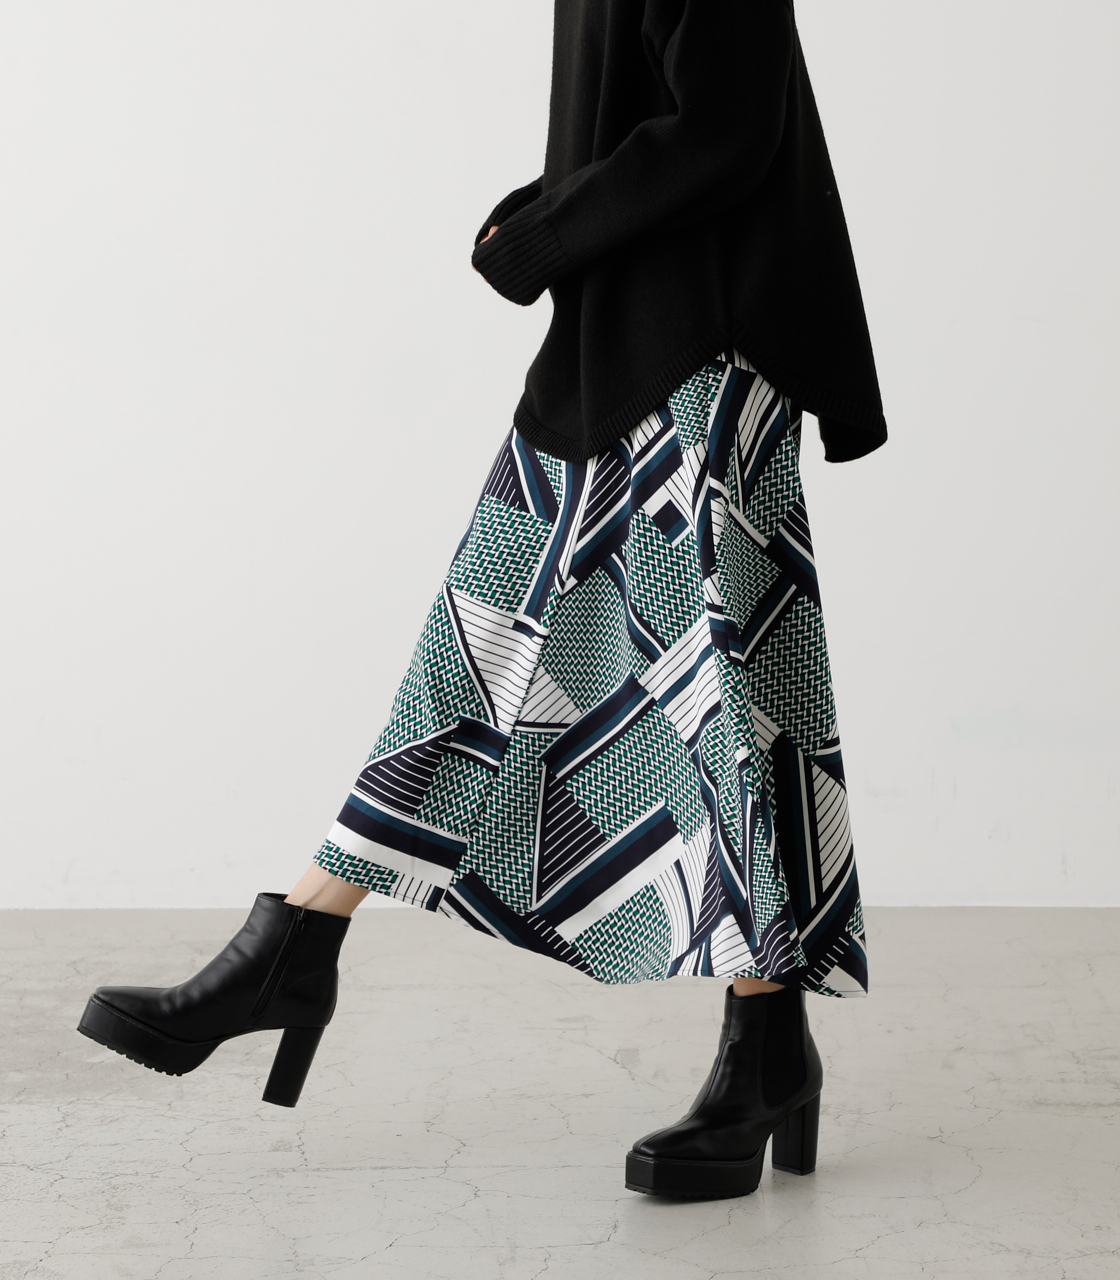 SCARF PATTERN SKIRT/スカーフパターンスカート 詳細画像 柄GRN 2